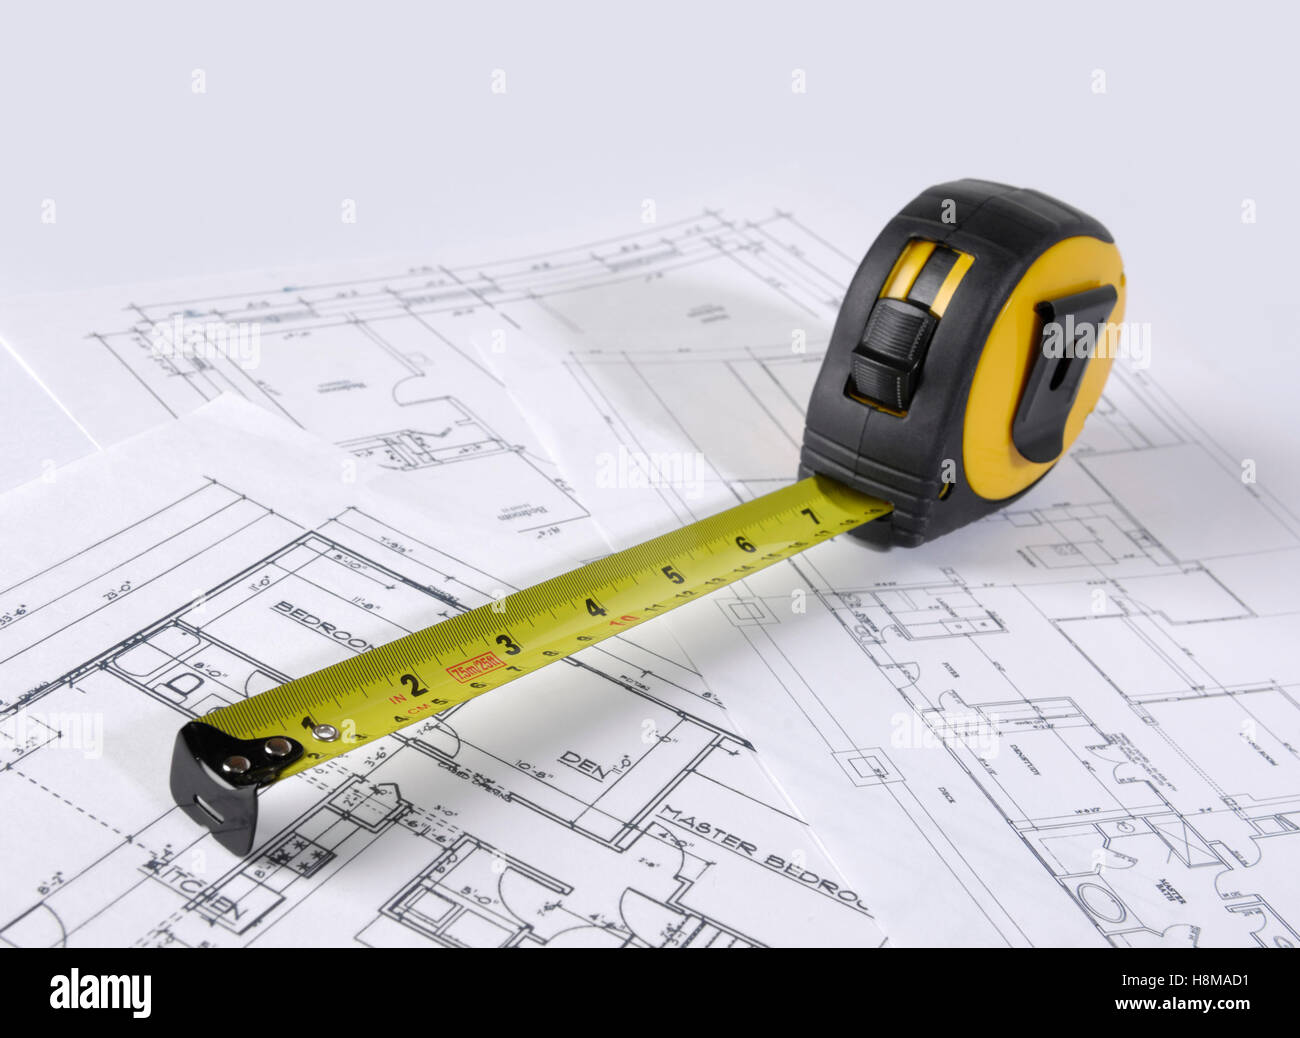 Ruban de mesure sur les plans de construction d'une maison Photo Stock